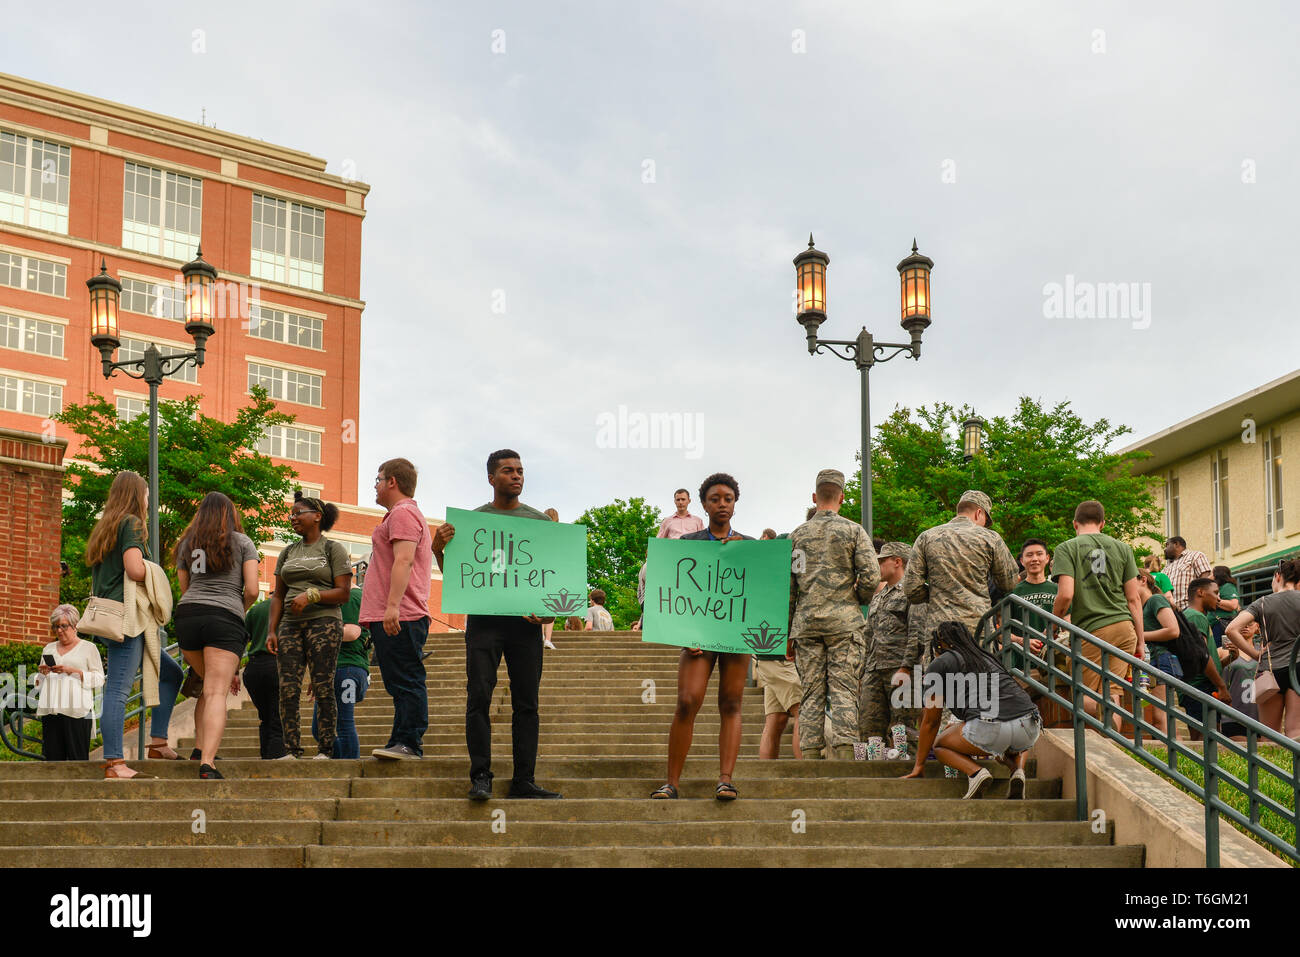 Charlotte, North Carolina, USA. 01st May, 2019. Students, teachers, and community members gather to hold vigil at UNCC including these two who silently stood holding a poster with the name of a deceased peer in their honor. A mass shooting occurred at the university the prior day adding one more school to the list of school shootings in America in the midst of a gun control controversy. Credit: Castle Light Images/Alamy Live News - Stock Image